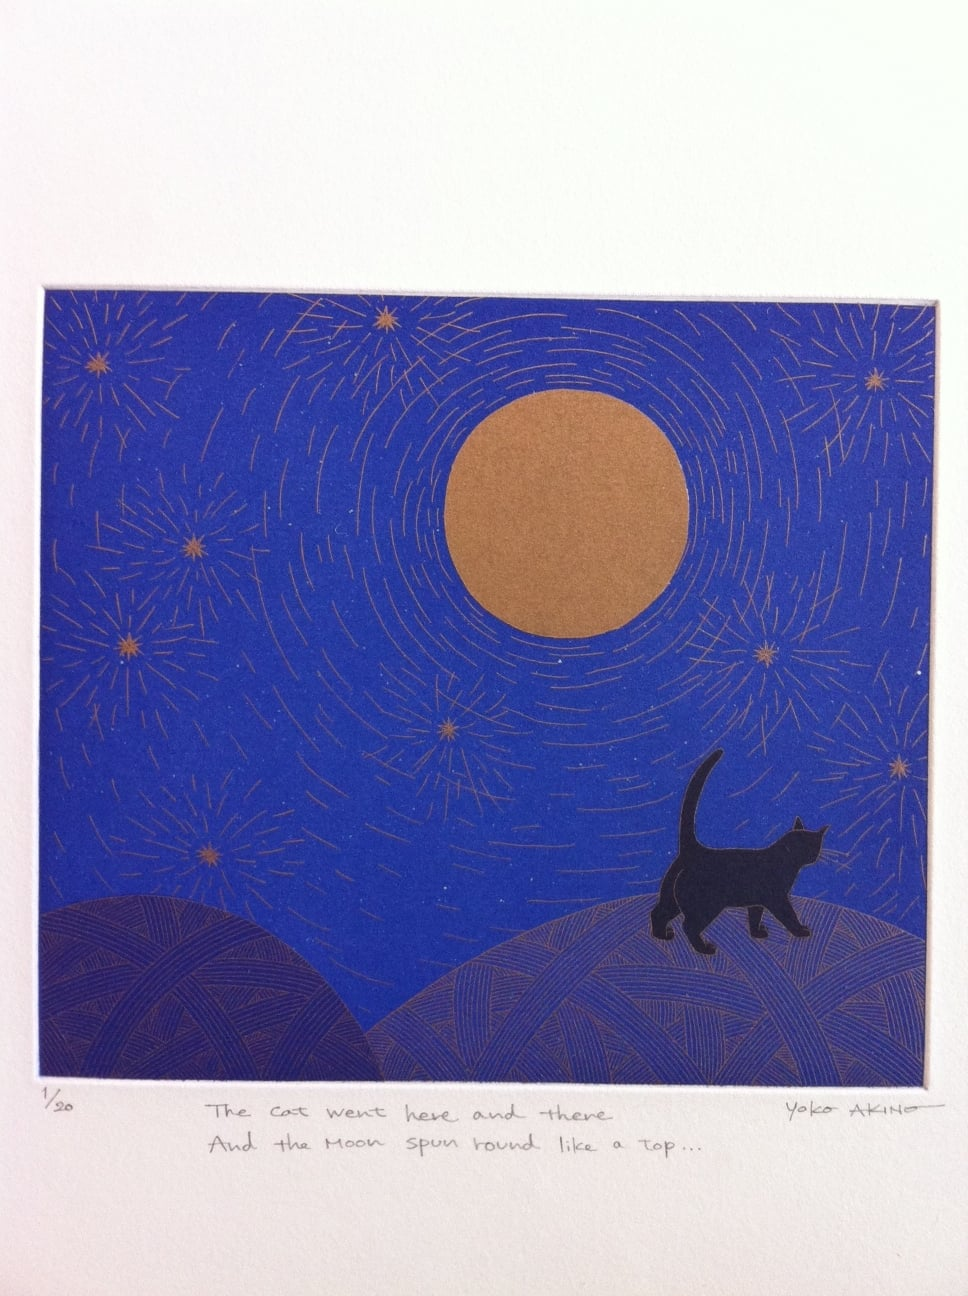 The Cat went Here and there and the moon spun round like a top…